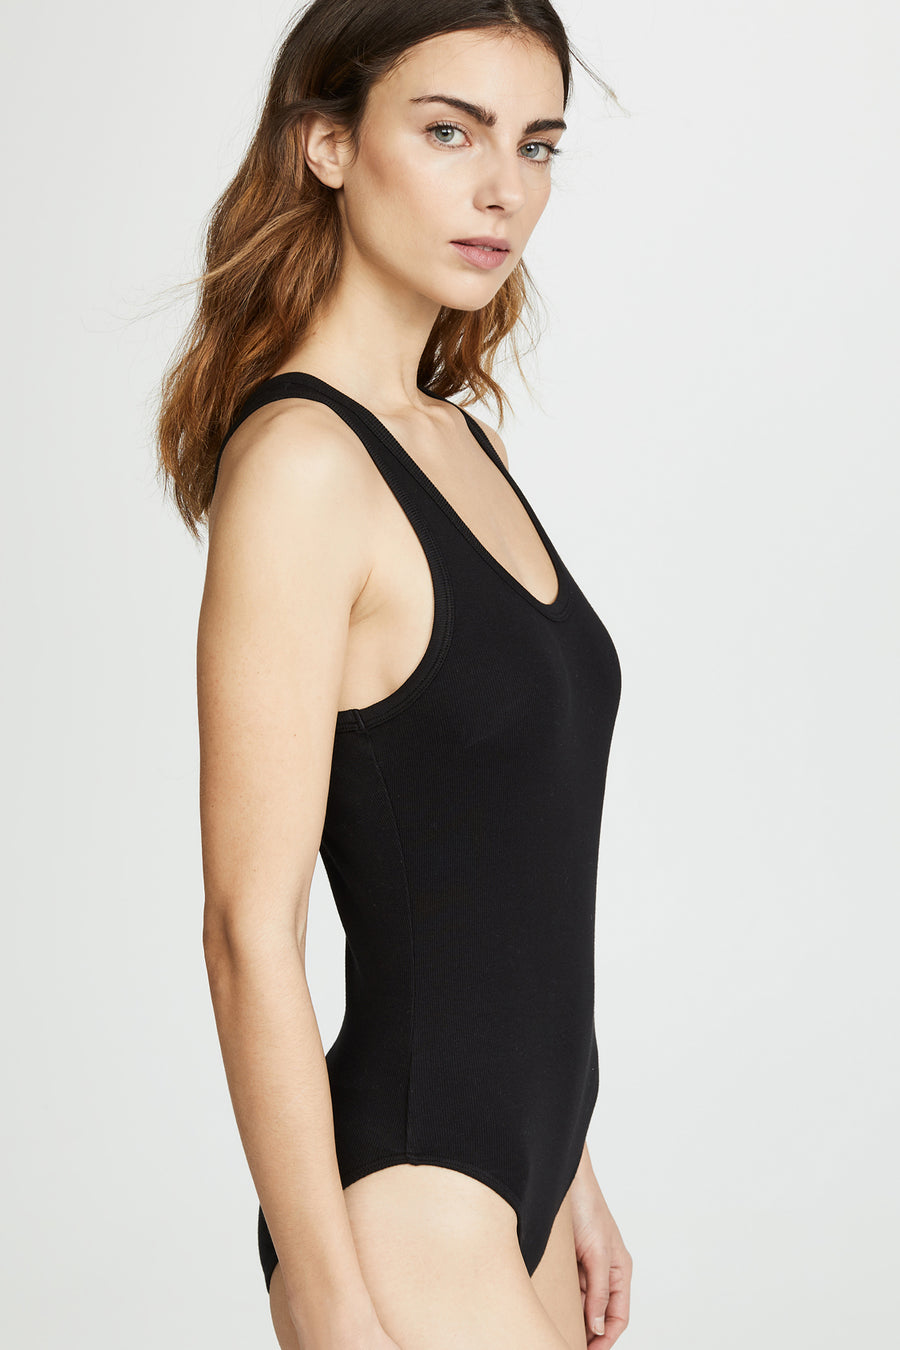 Rib Tank Body Suit - Black